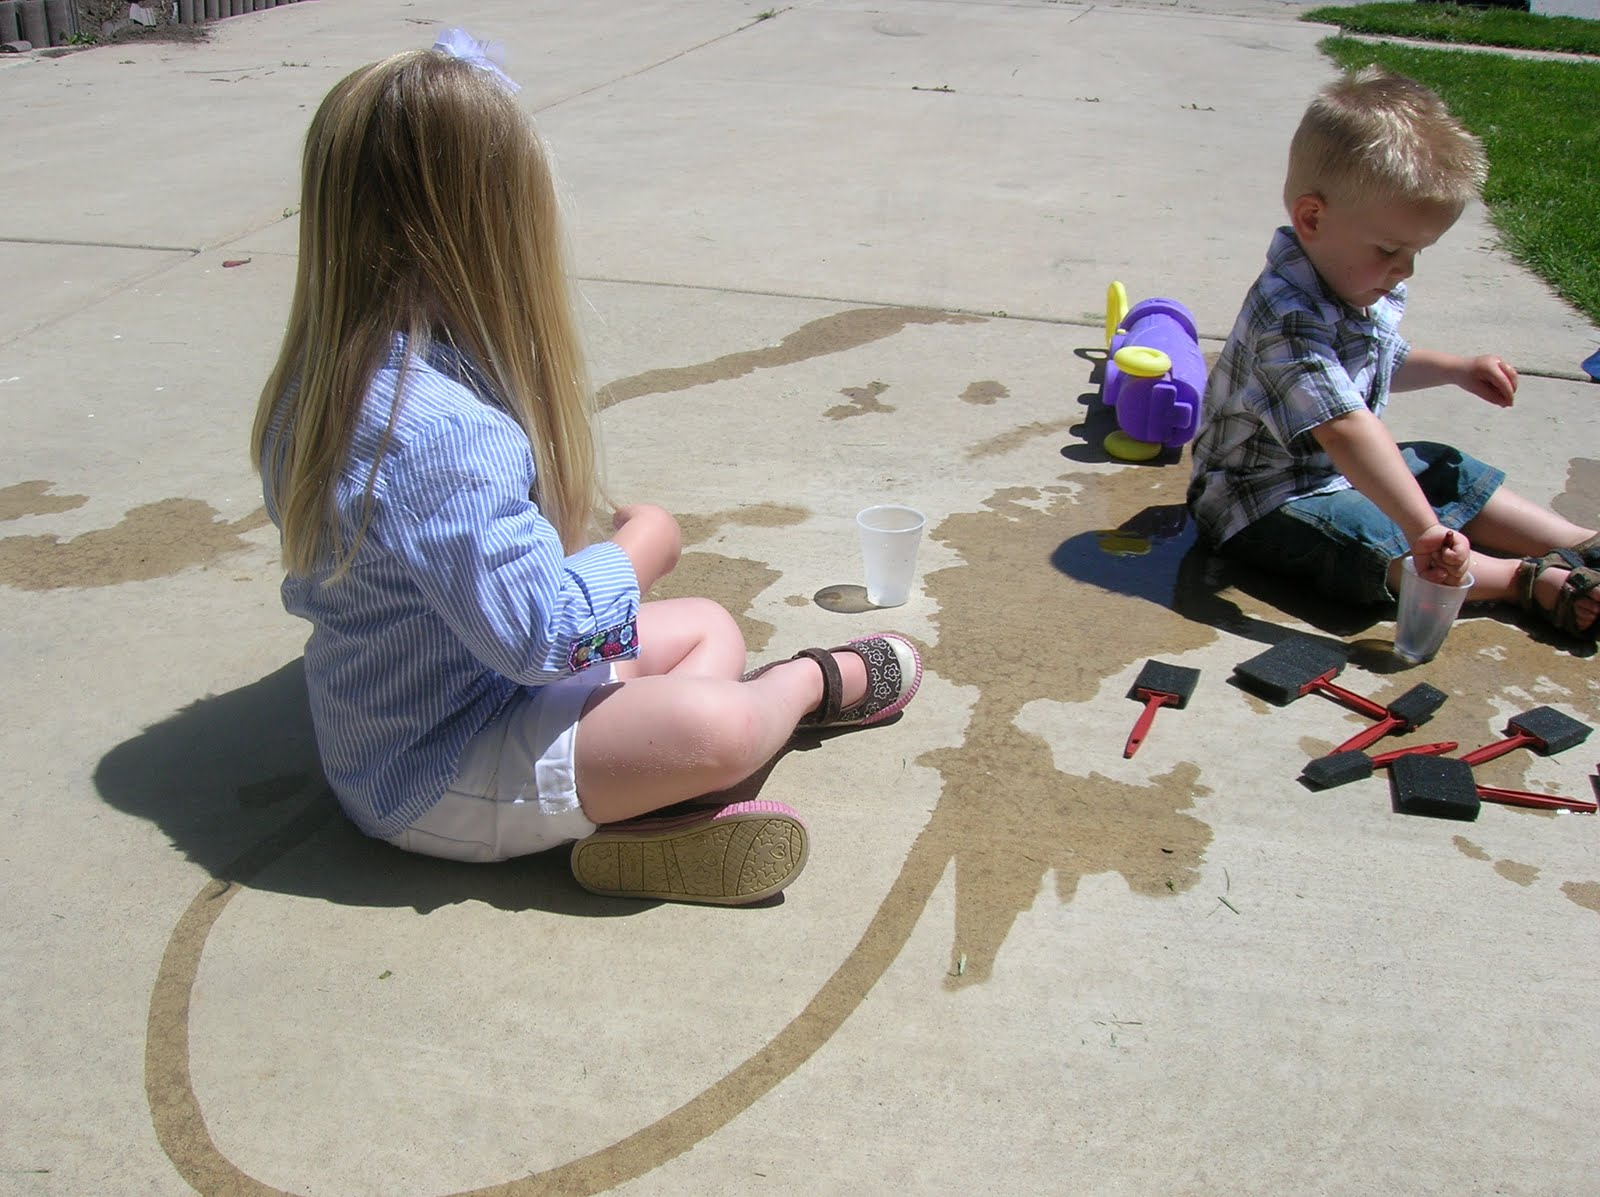 Painting The Sidewalk With WATER Six Sisters Stuff